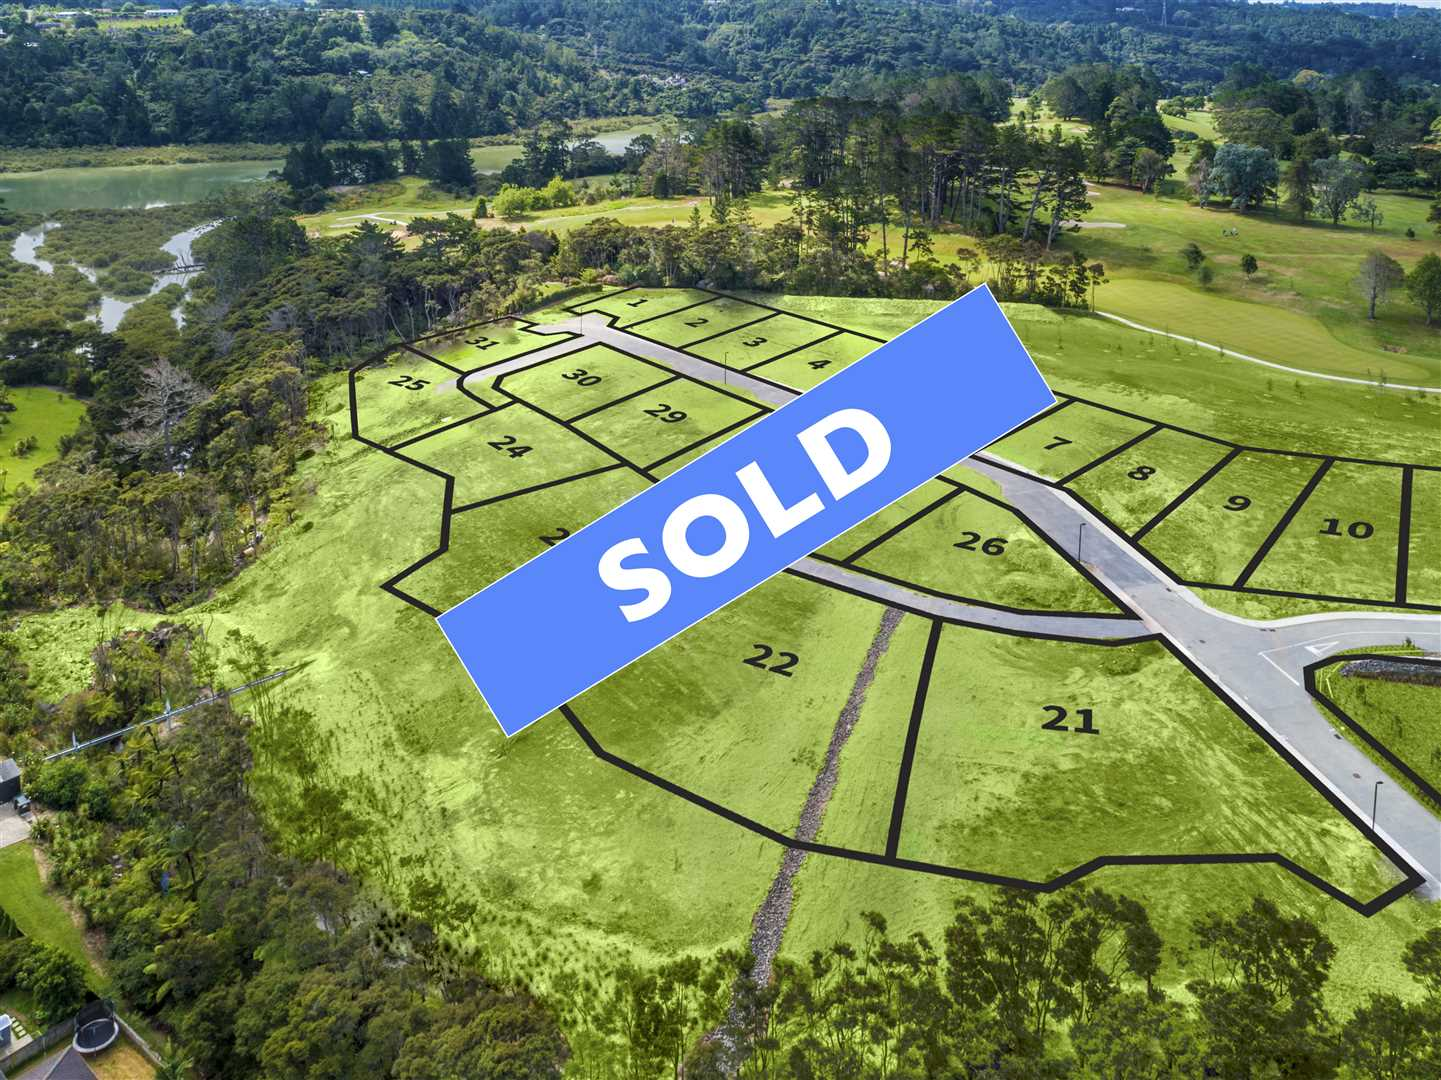 LOT 3 SOLD